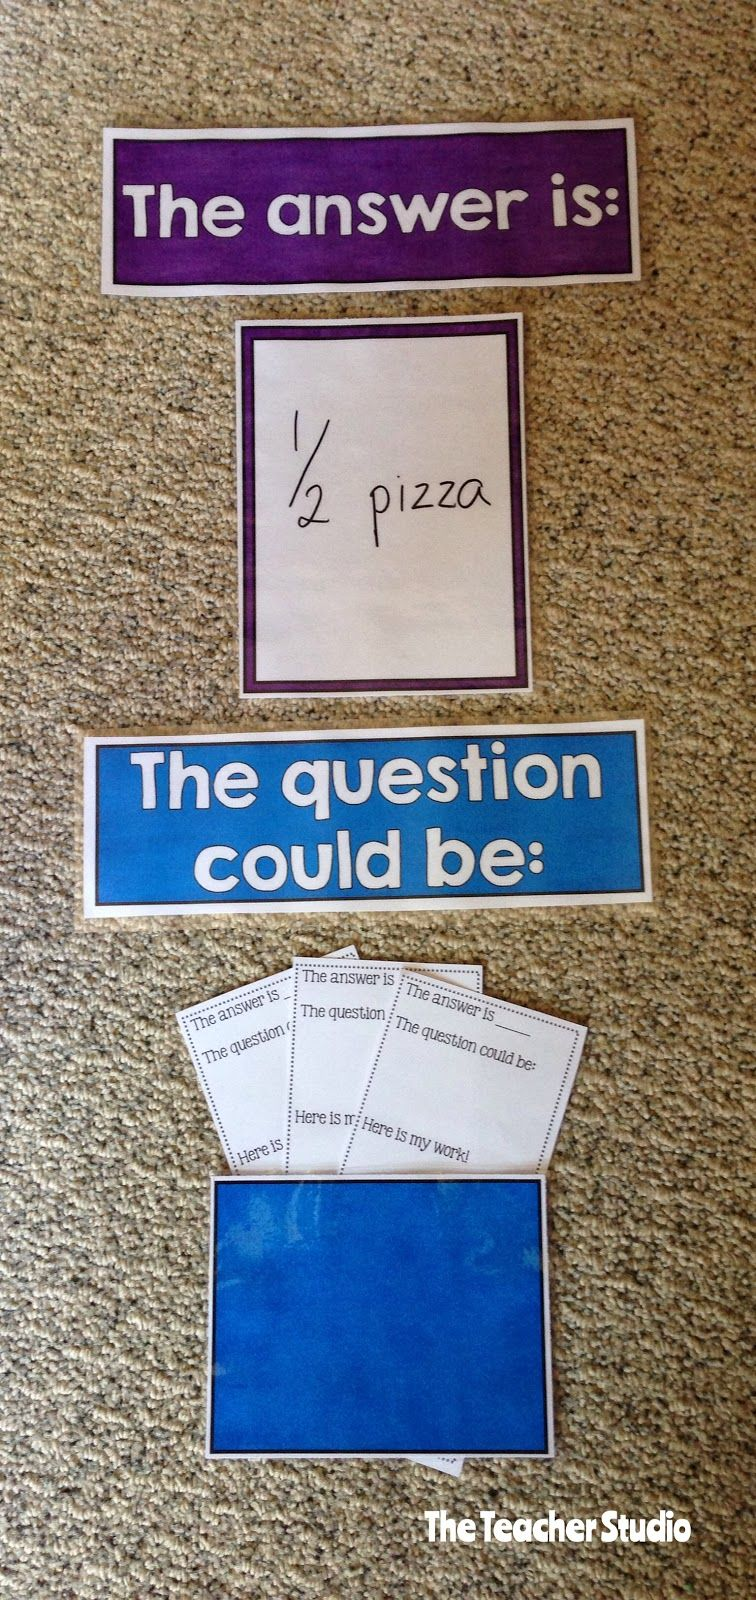 Struggling with a maths paper question (fractions)?